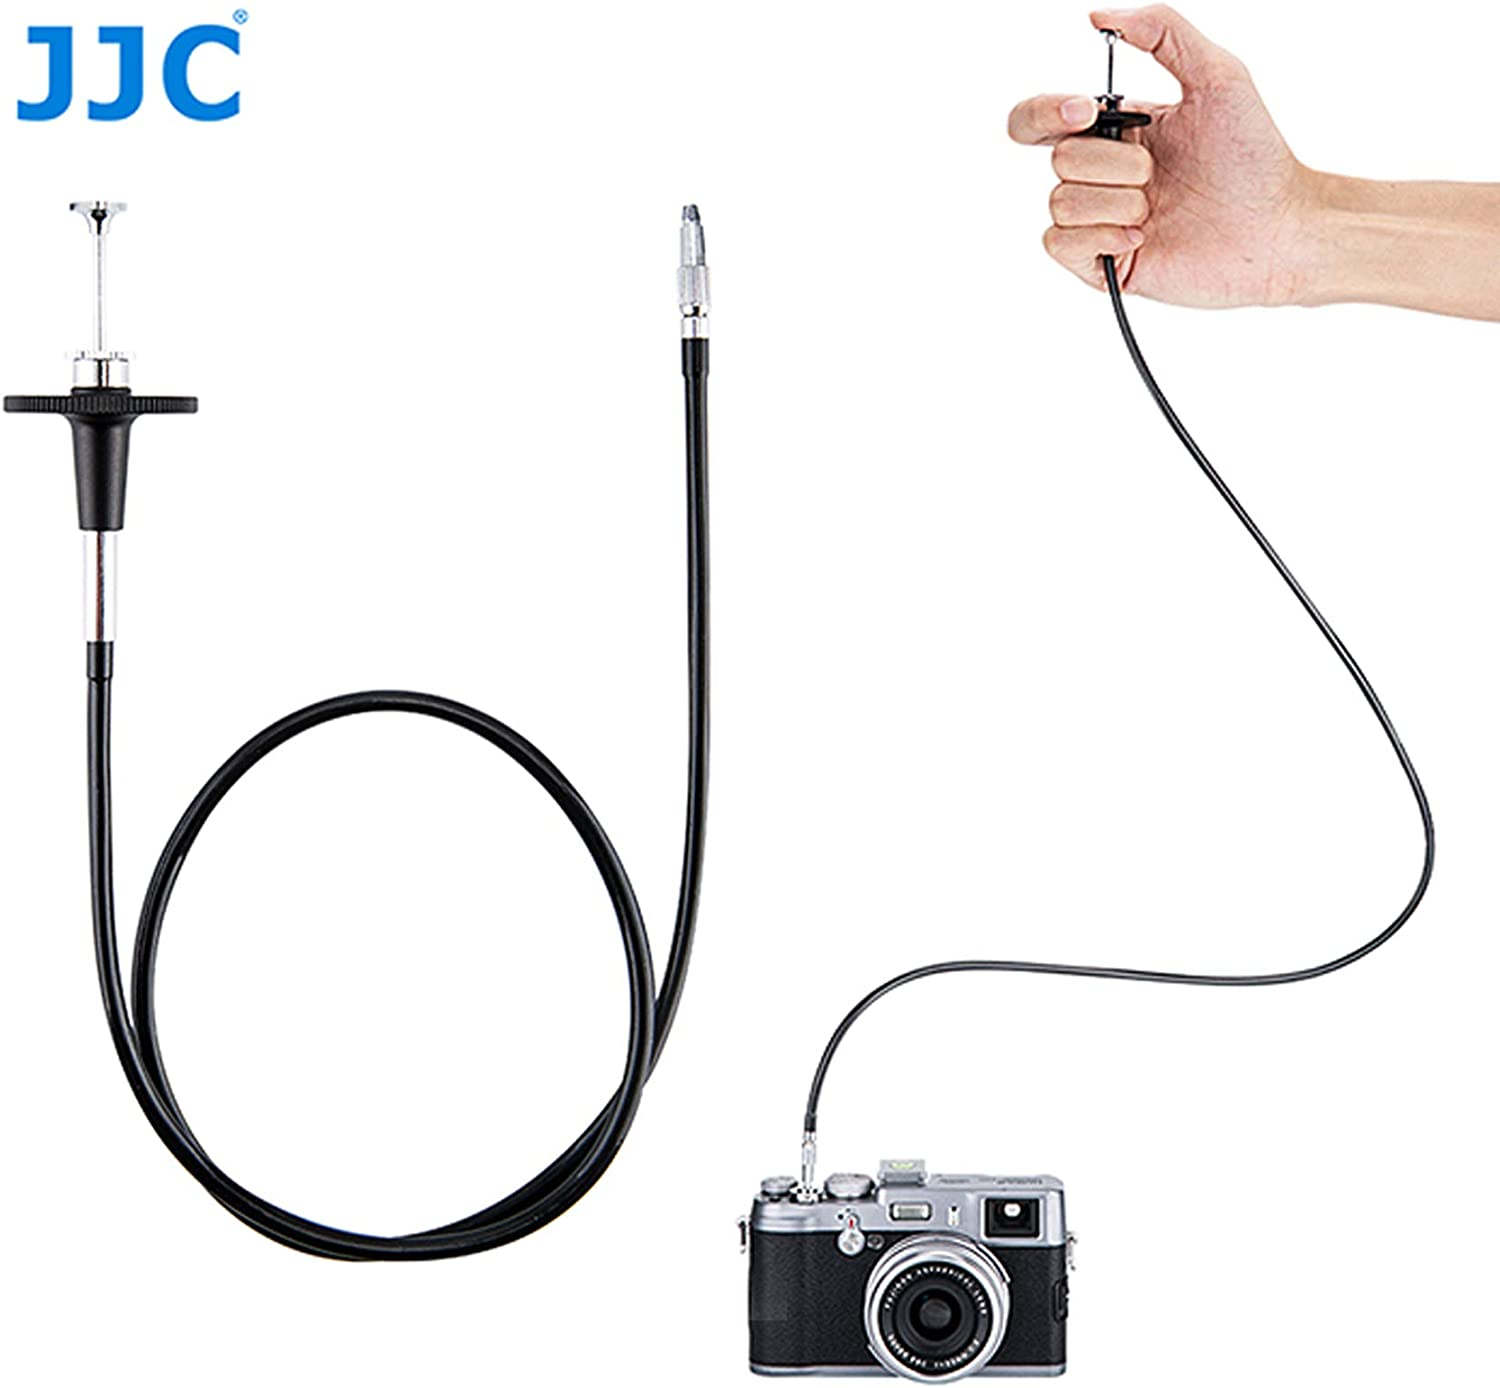 Mechanical Shutter Release Cable JJC TCR-40S Silver 40cm Threaded Cable Release Bulb-Lock Design for Long exposures